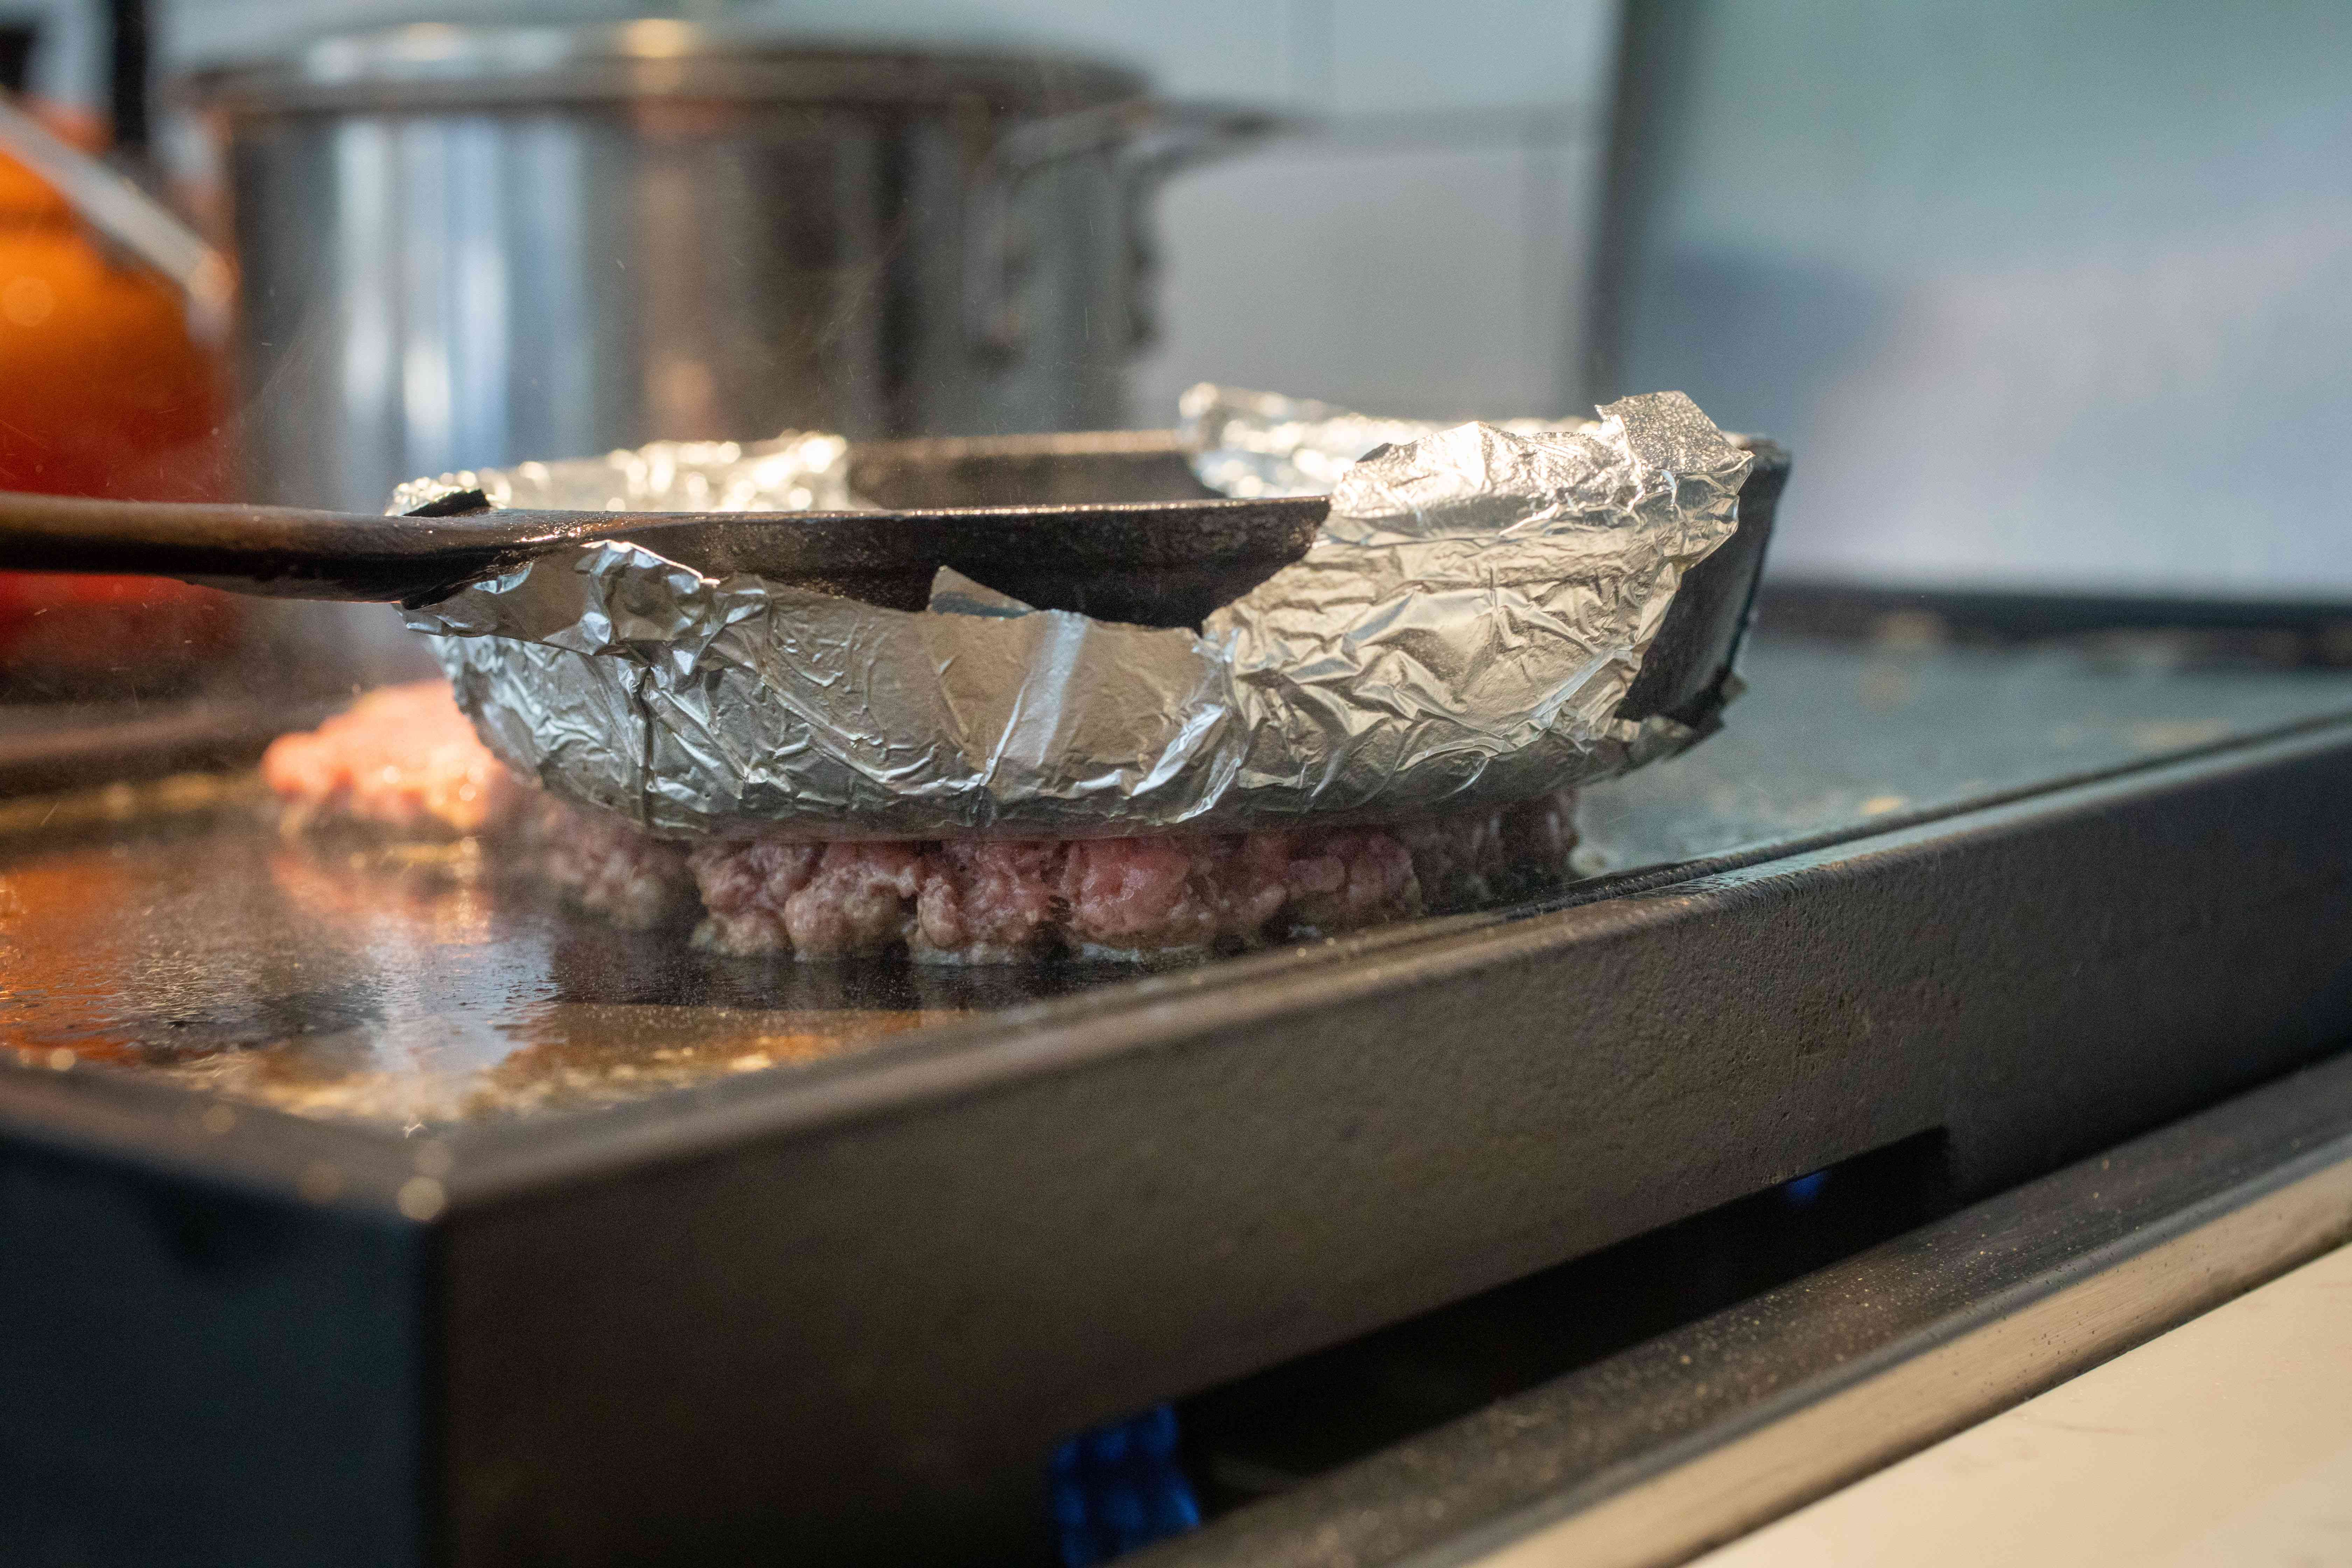 Skillet with foil wrapped around the bottom of it to make a Smashburger-style burger recipe.